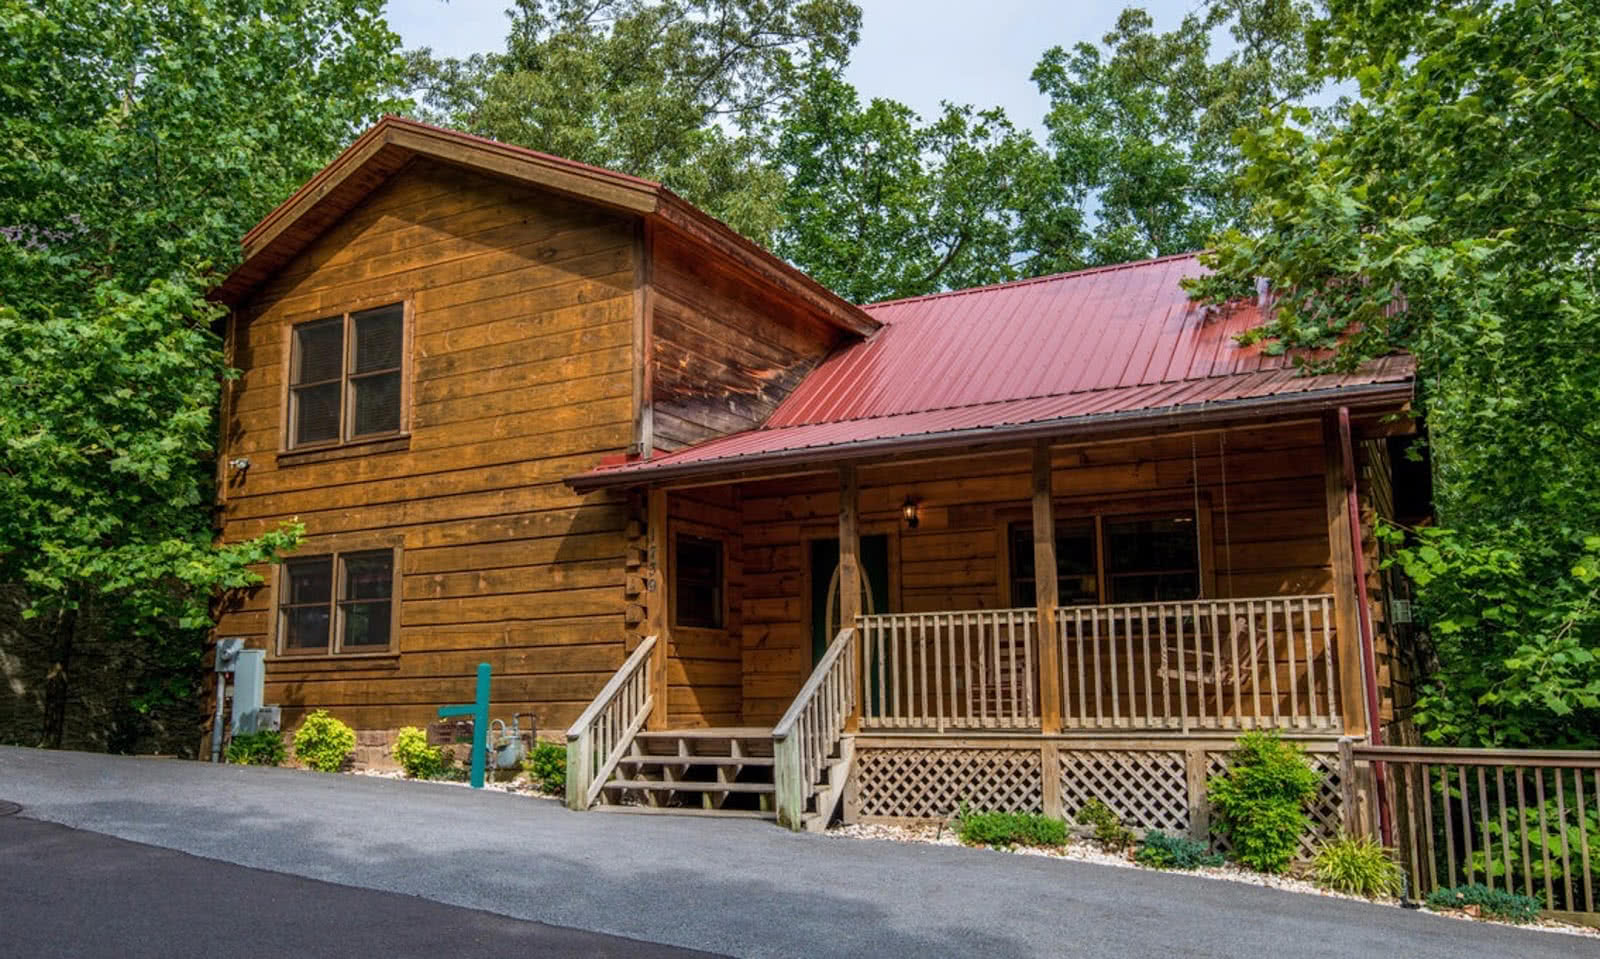 Log Inn Family Cabin - 5 bedrooms, 3 baths, minutes from downtown Gatlinburg